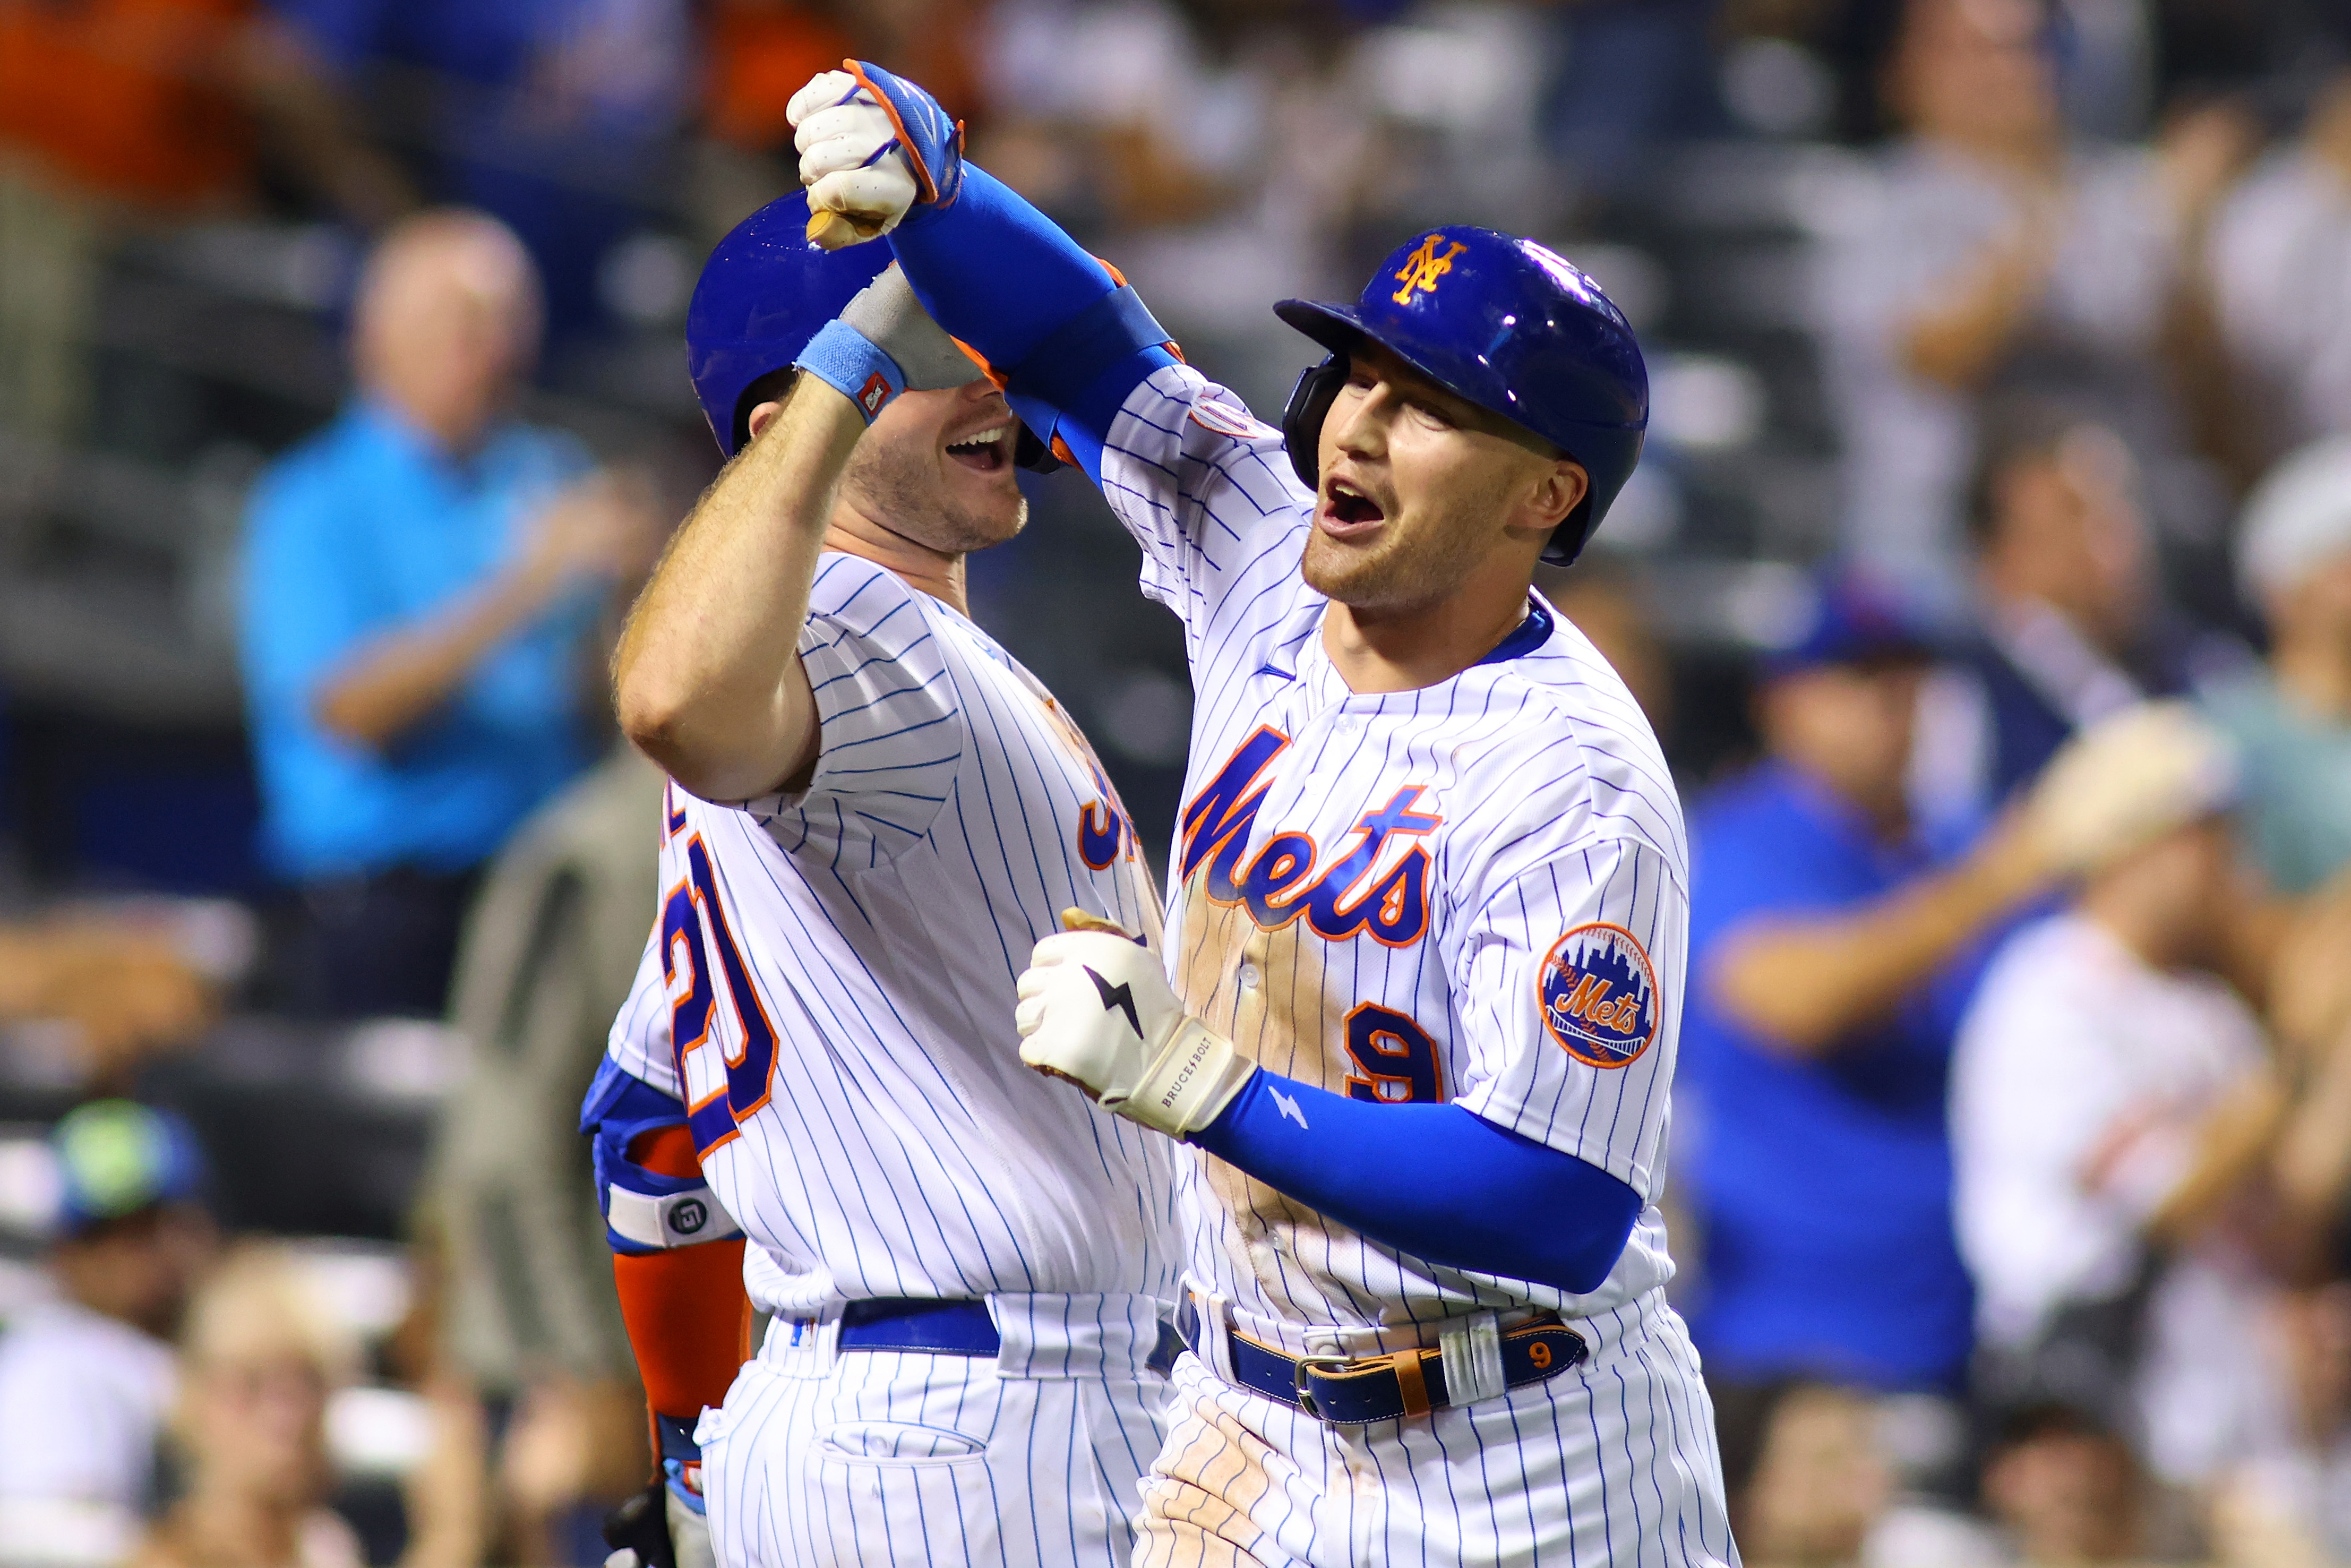 Brandon Nimmo of the New York Mets celebrates with Pete Alonso after hitting a home run in the eighth inning against the Philadelphia Phillies at Citi Field on September 18, 2021 in New York City.